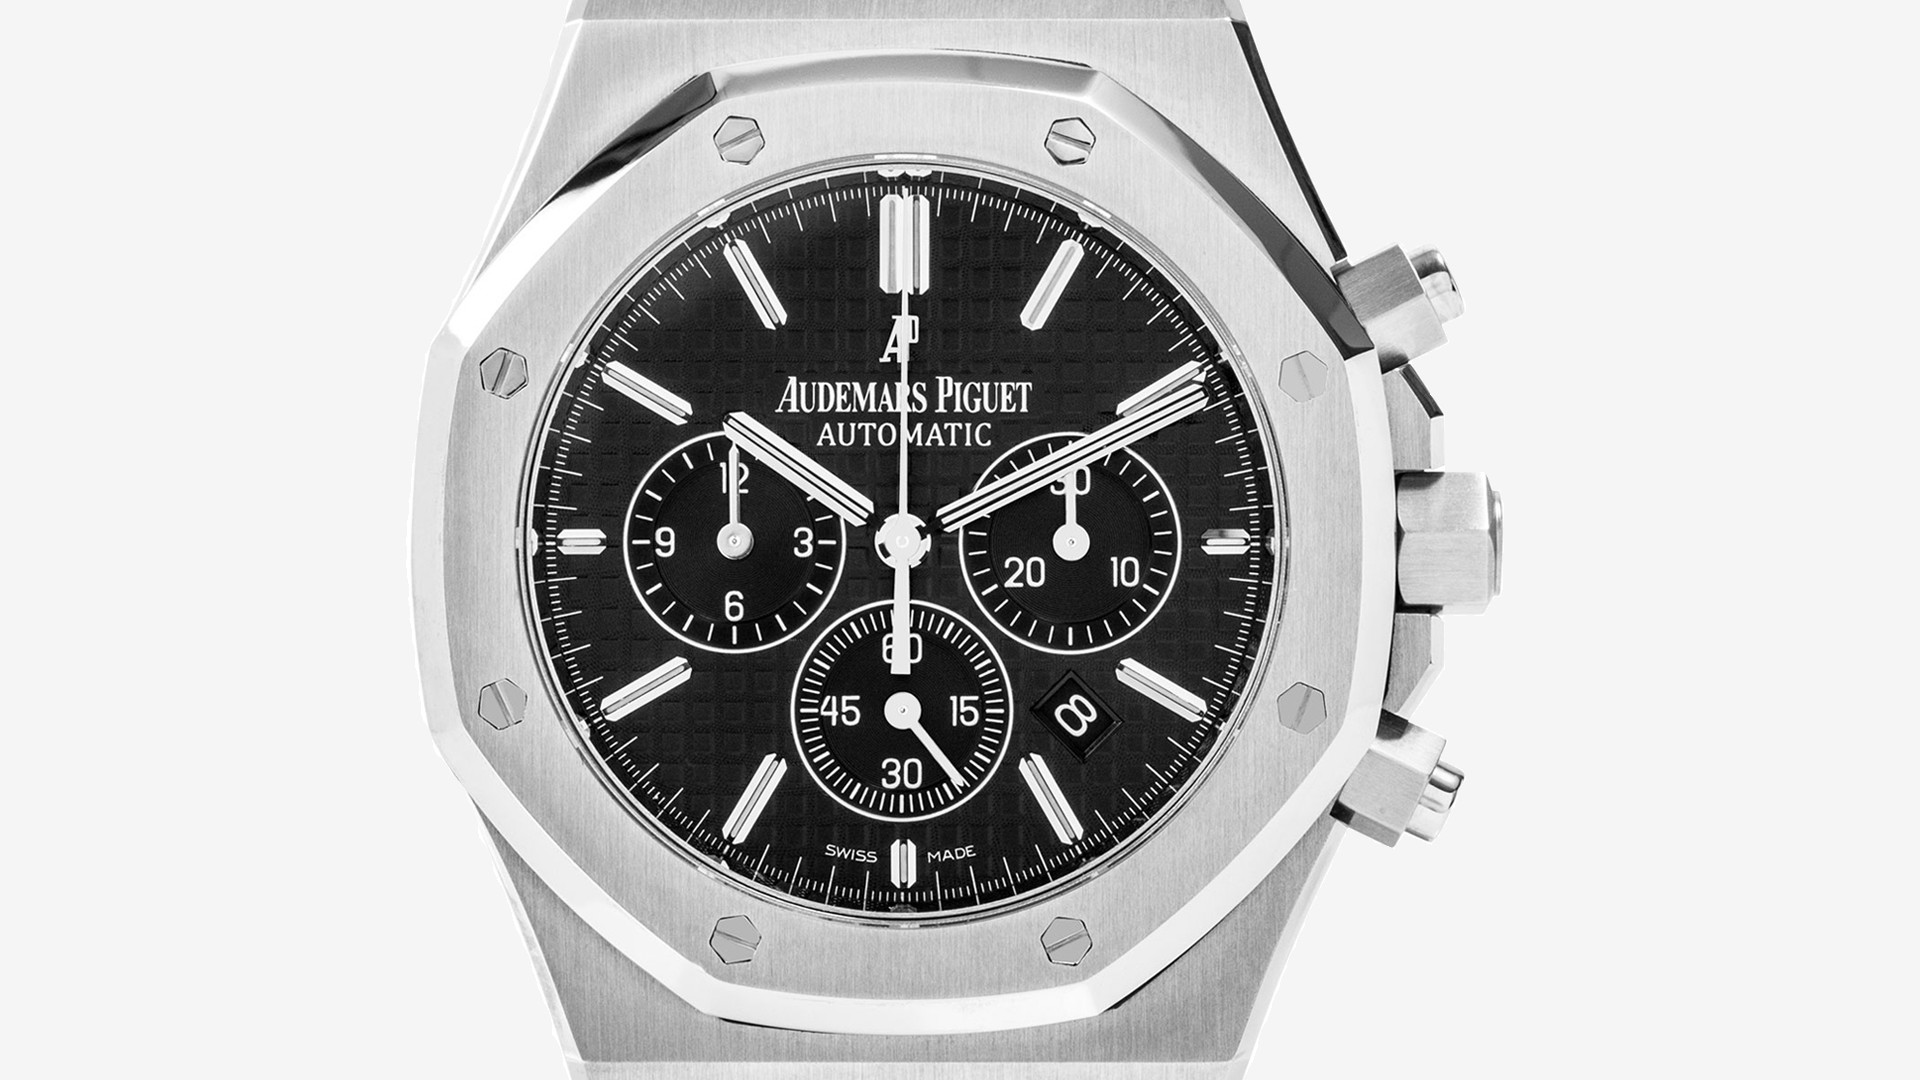 Audemars Piguet Royal Oak Chronograph in stainless steel with black dial